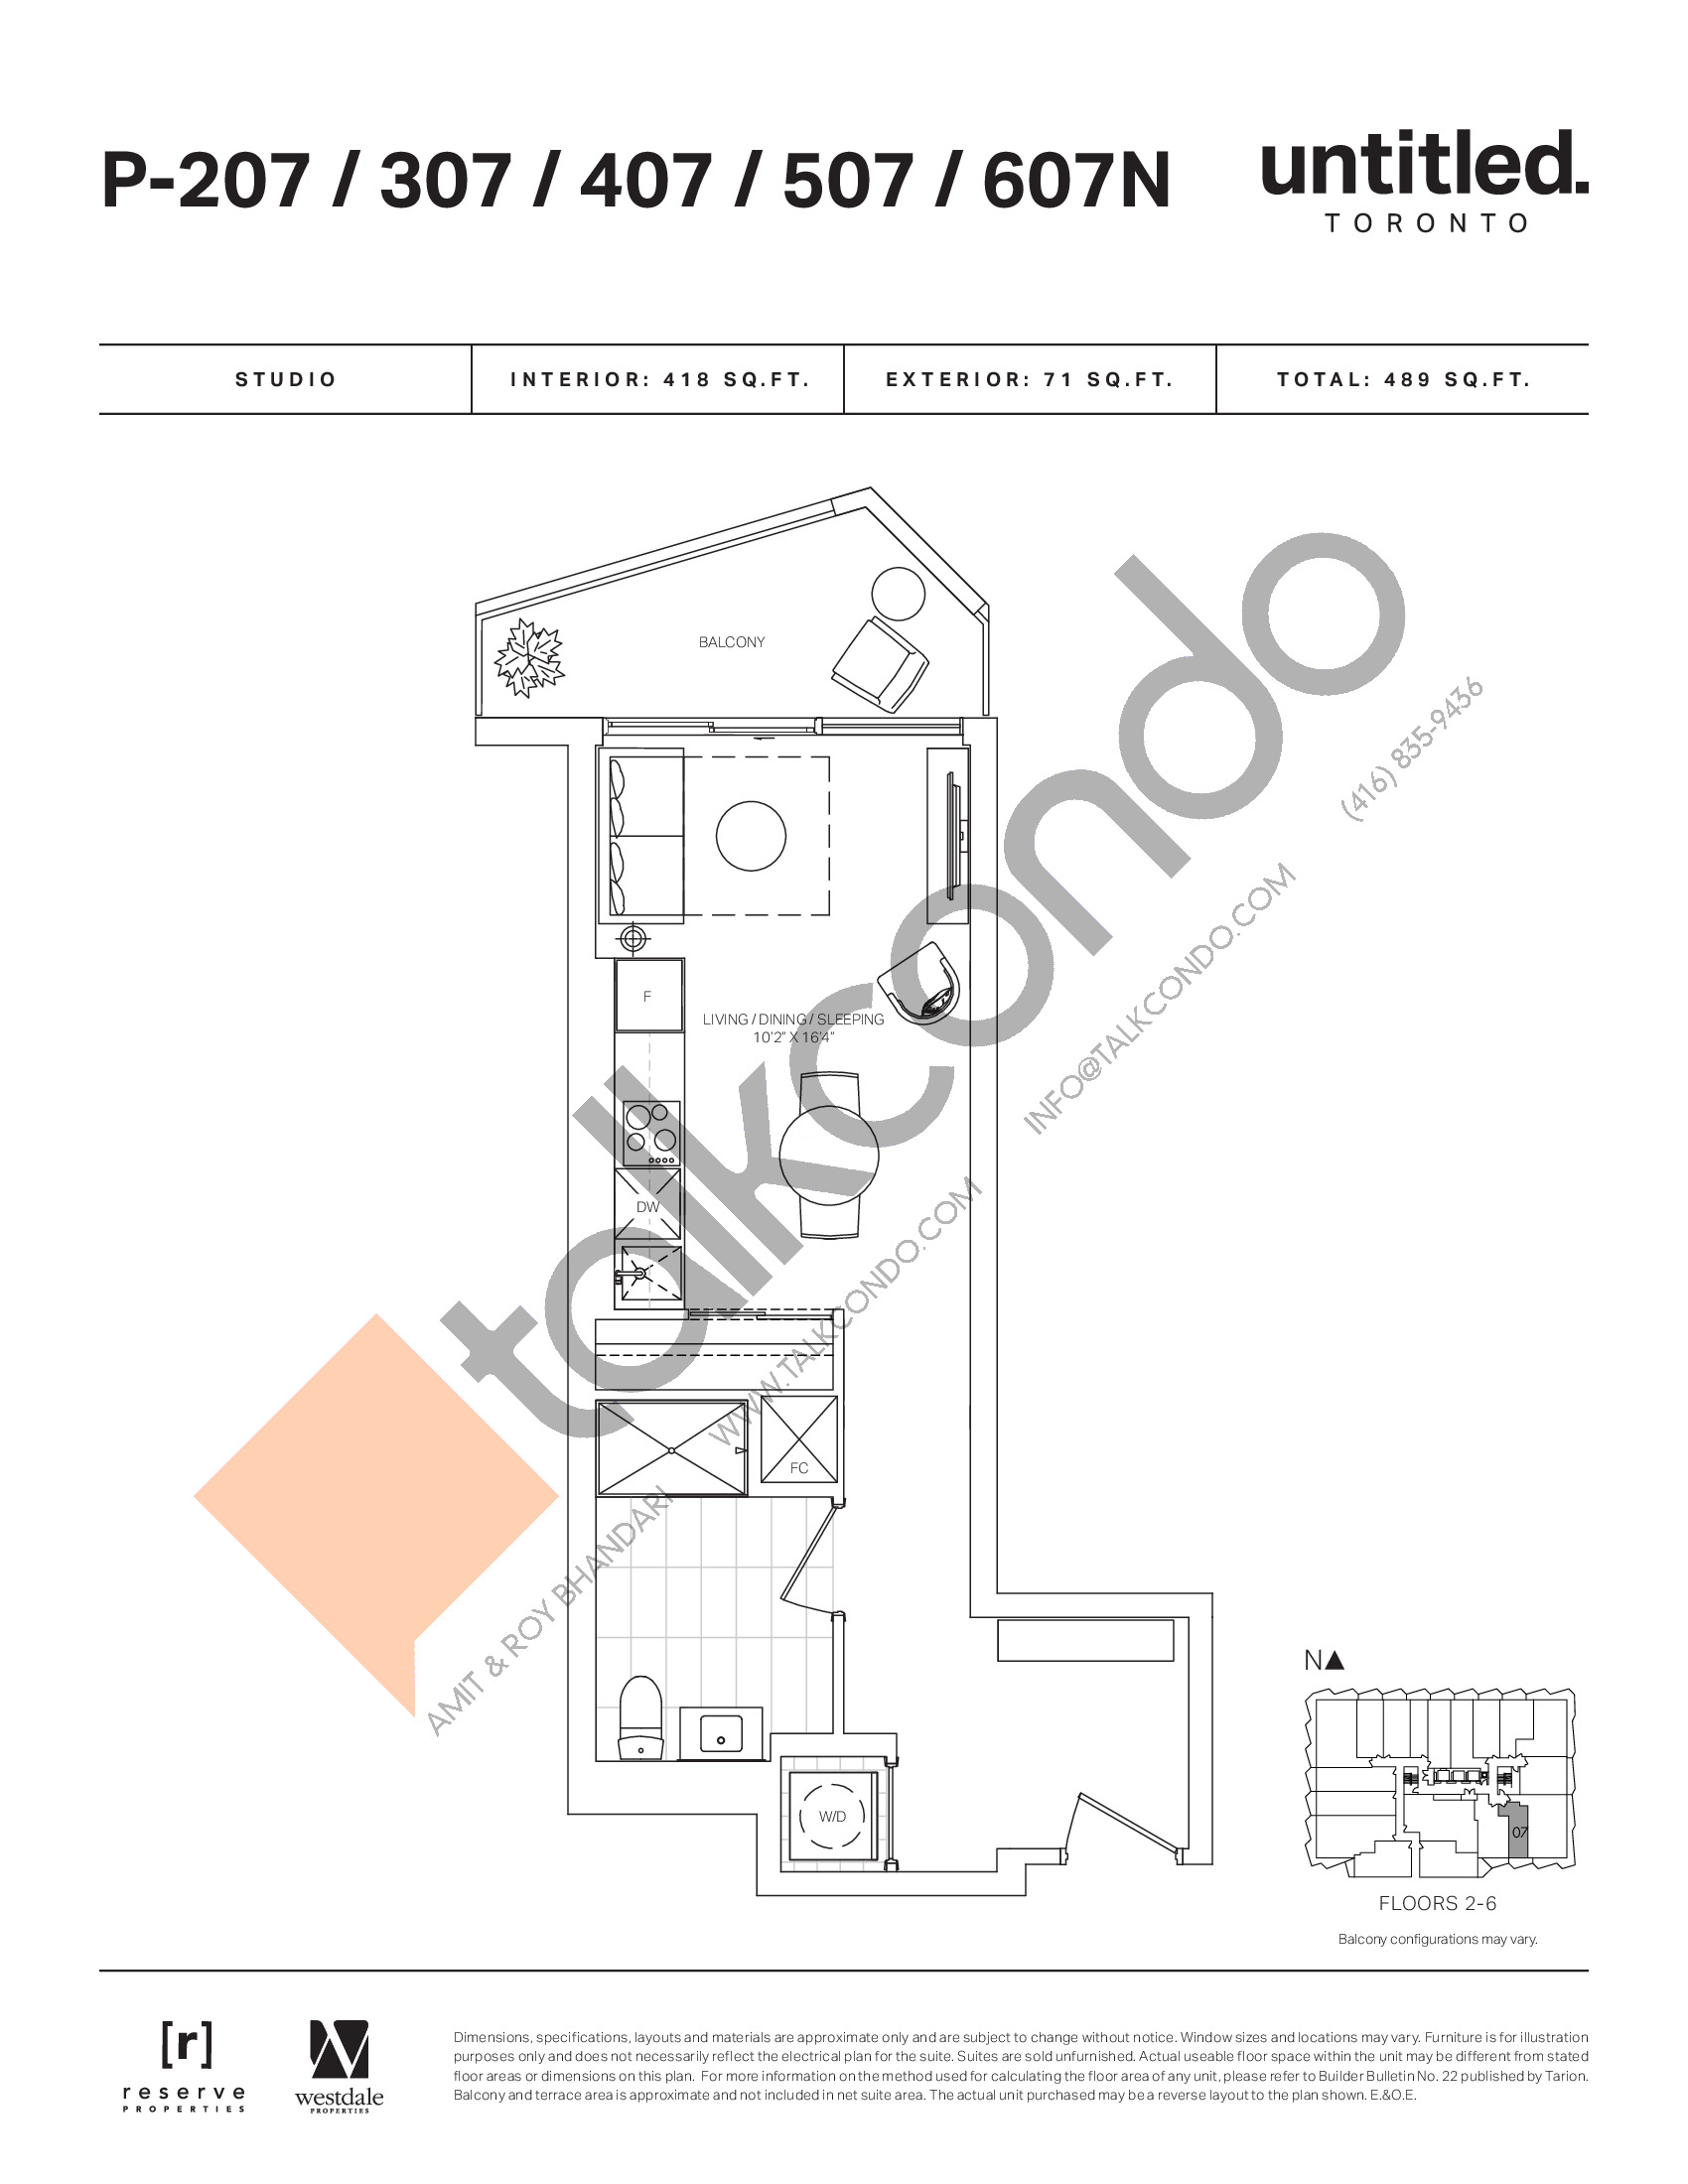 P-207/307/407/507/607N Floor Plan at Untitled North Tower Condos - 418 sq.ft